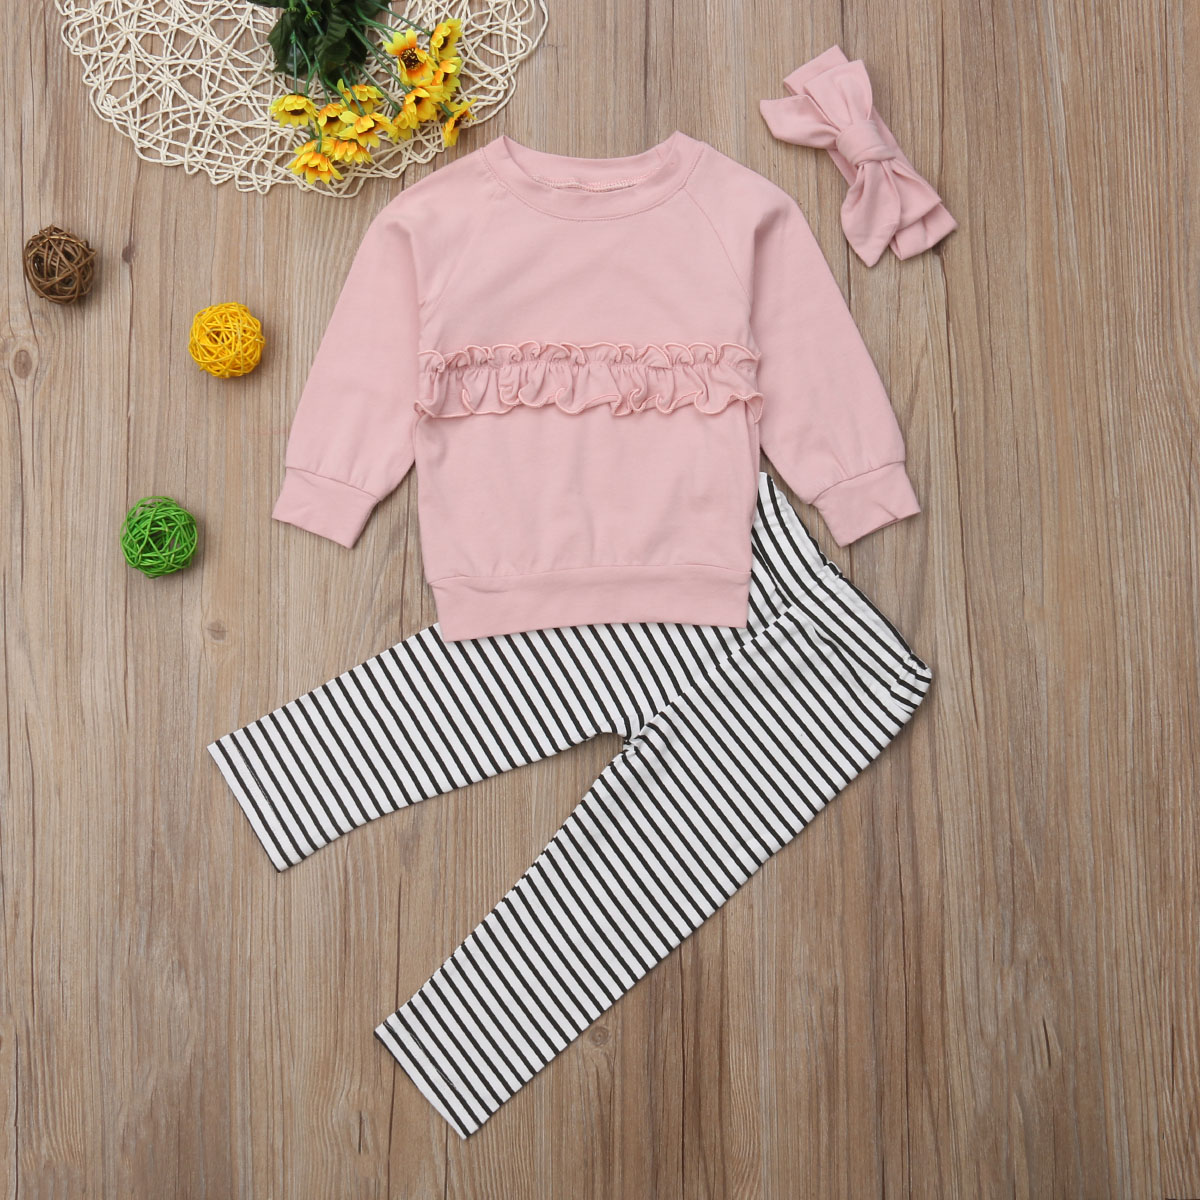 Pudcoco 2Pcs Autumn Casual Kid Baby Girl Clothes Set Long Sleeve T shirt Top Striped Pants Legging Outfit new in Clothing Sets from Mother Kids